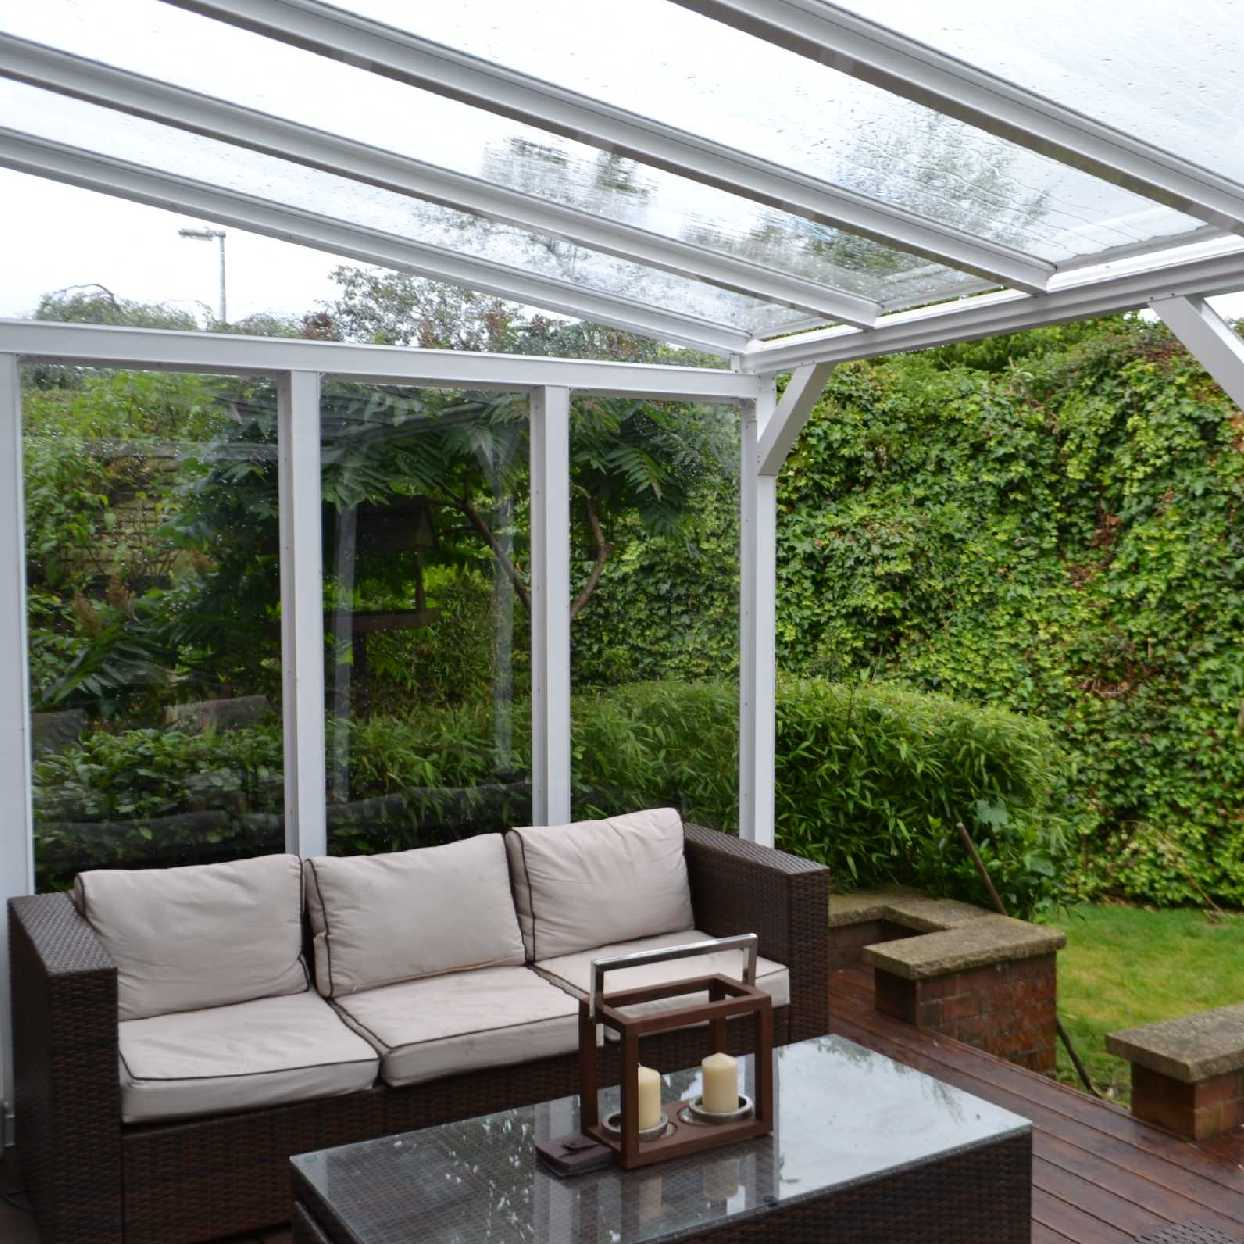 Omega Smart Lean-To Canopy UNGLAZED for 6mm Glazing - 8.4m (W) x 3.0m (P), (4) Supporting Posts